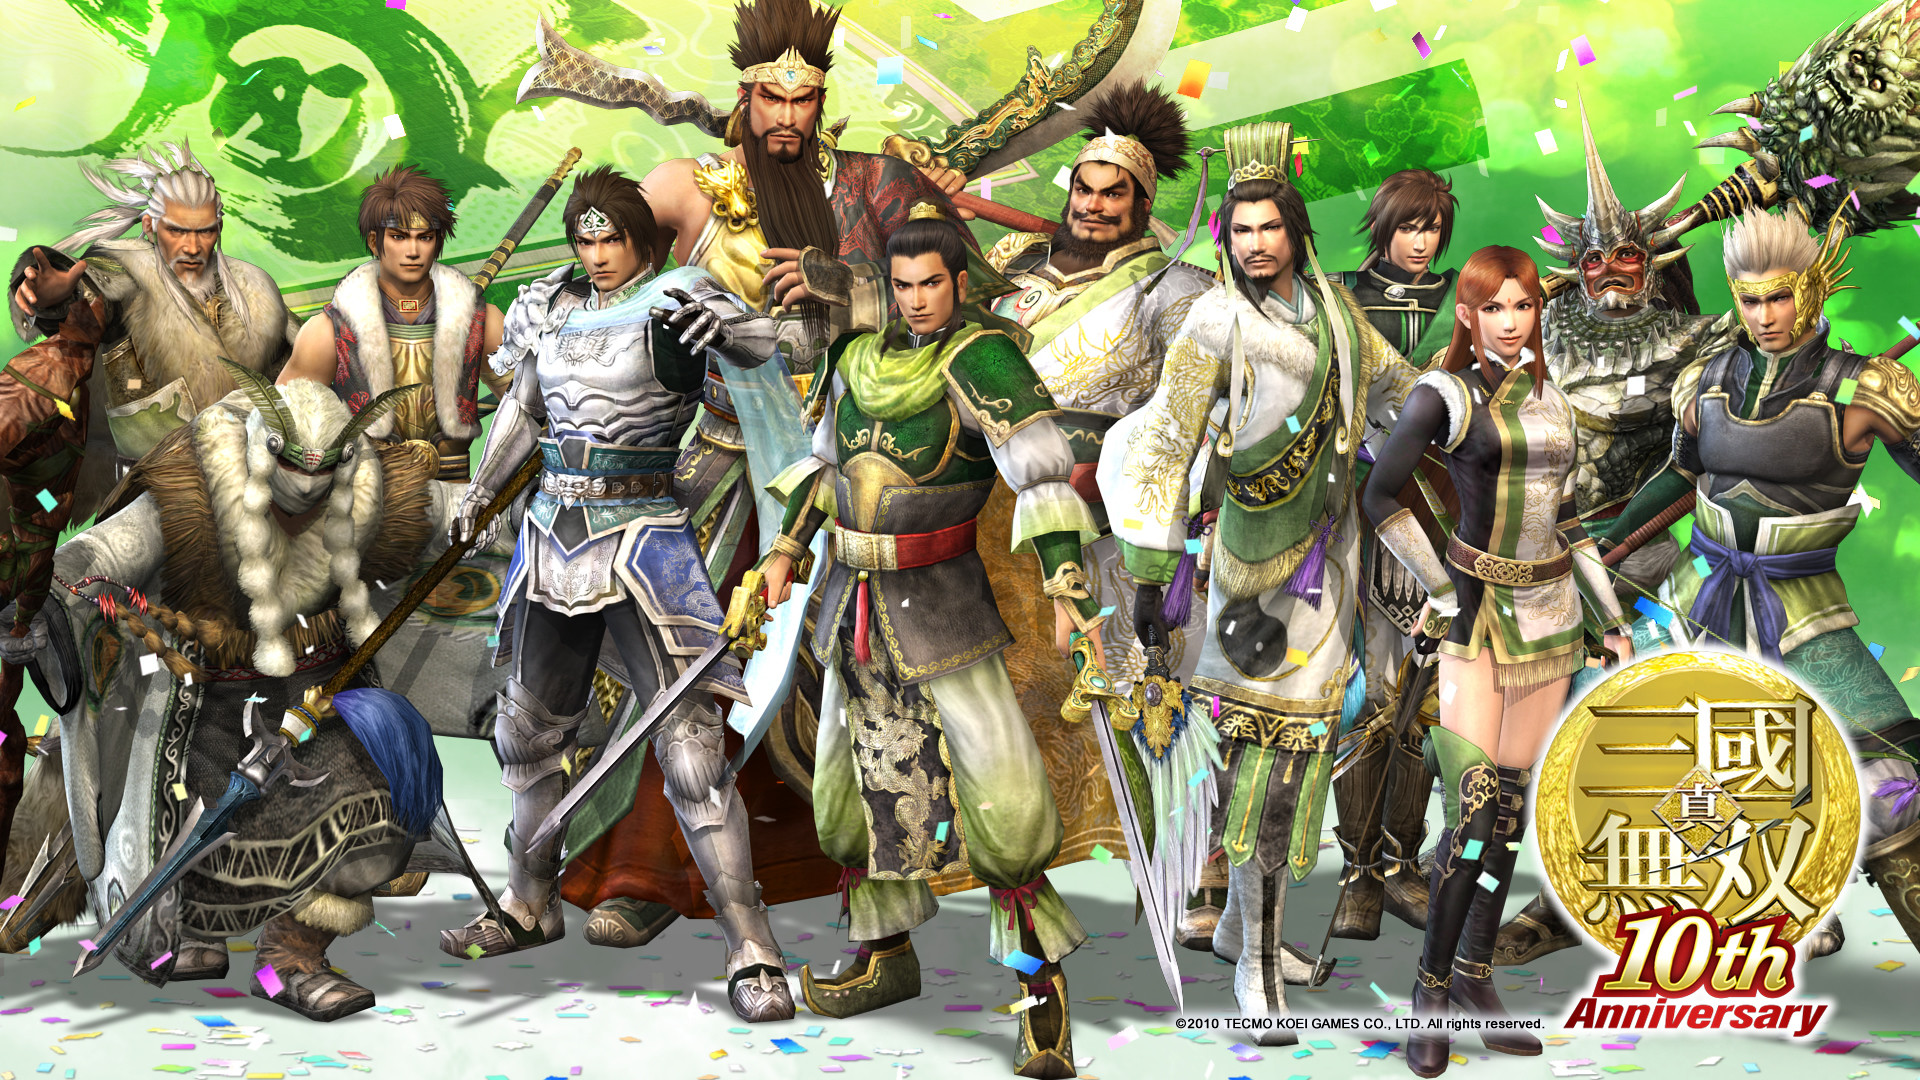 1920x1080 10th Anniversary Shu wallpaper - Dynasty Warriors 7 Message Board for  PlayStation 3 - GameFAQs